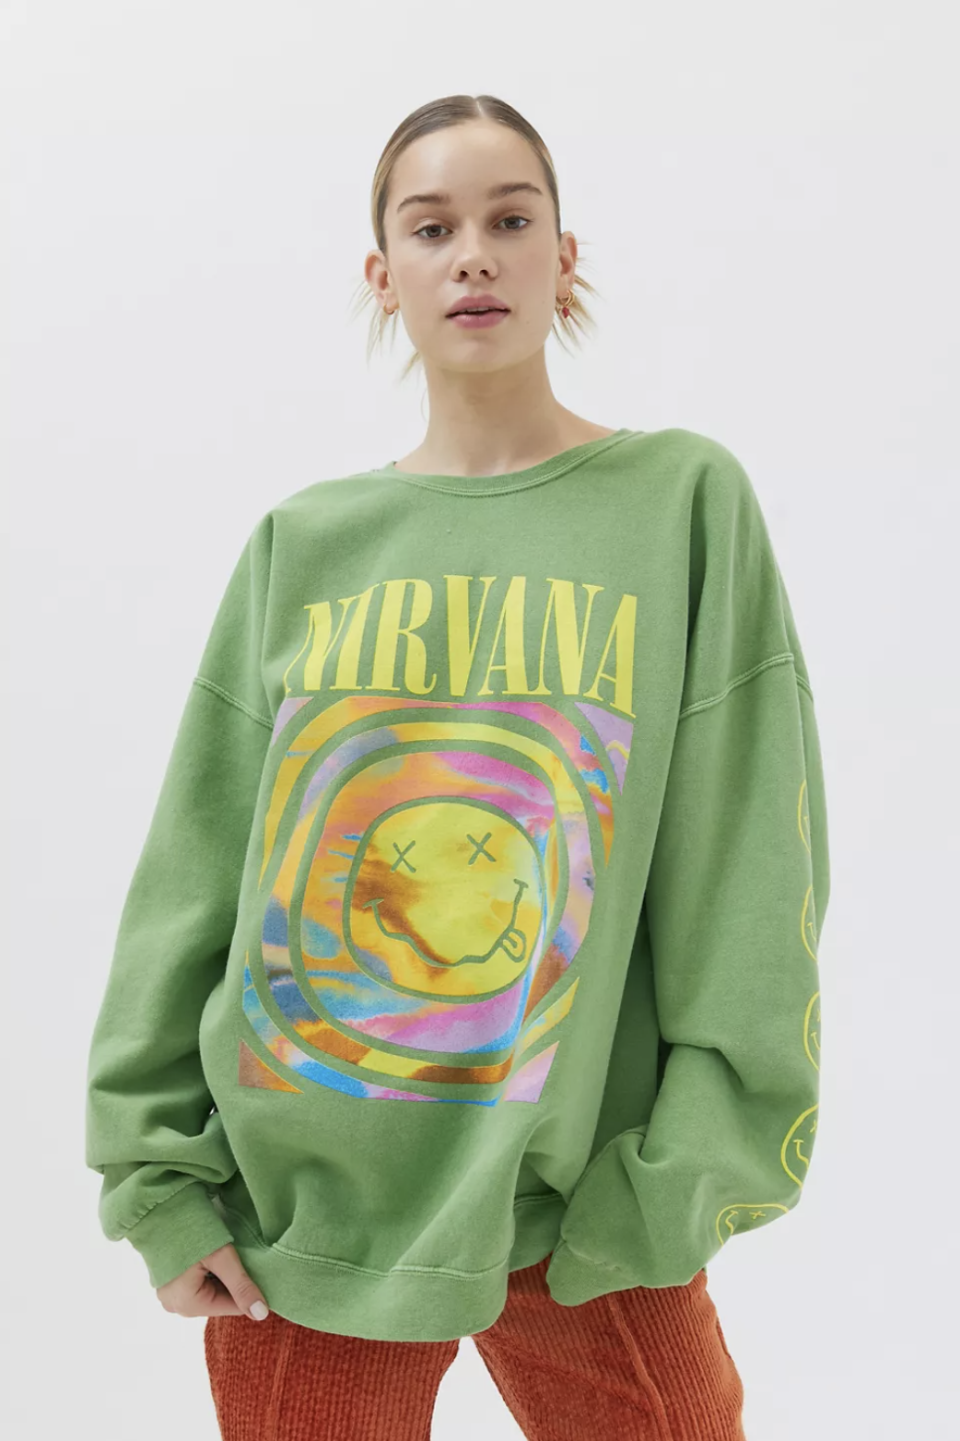 Nirvana Smile Overdyed Sweatshirt in Green (Photo via Urban Outfitters)